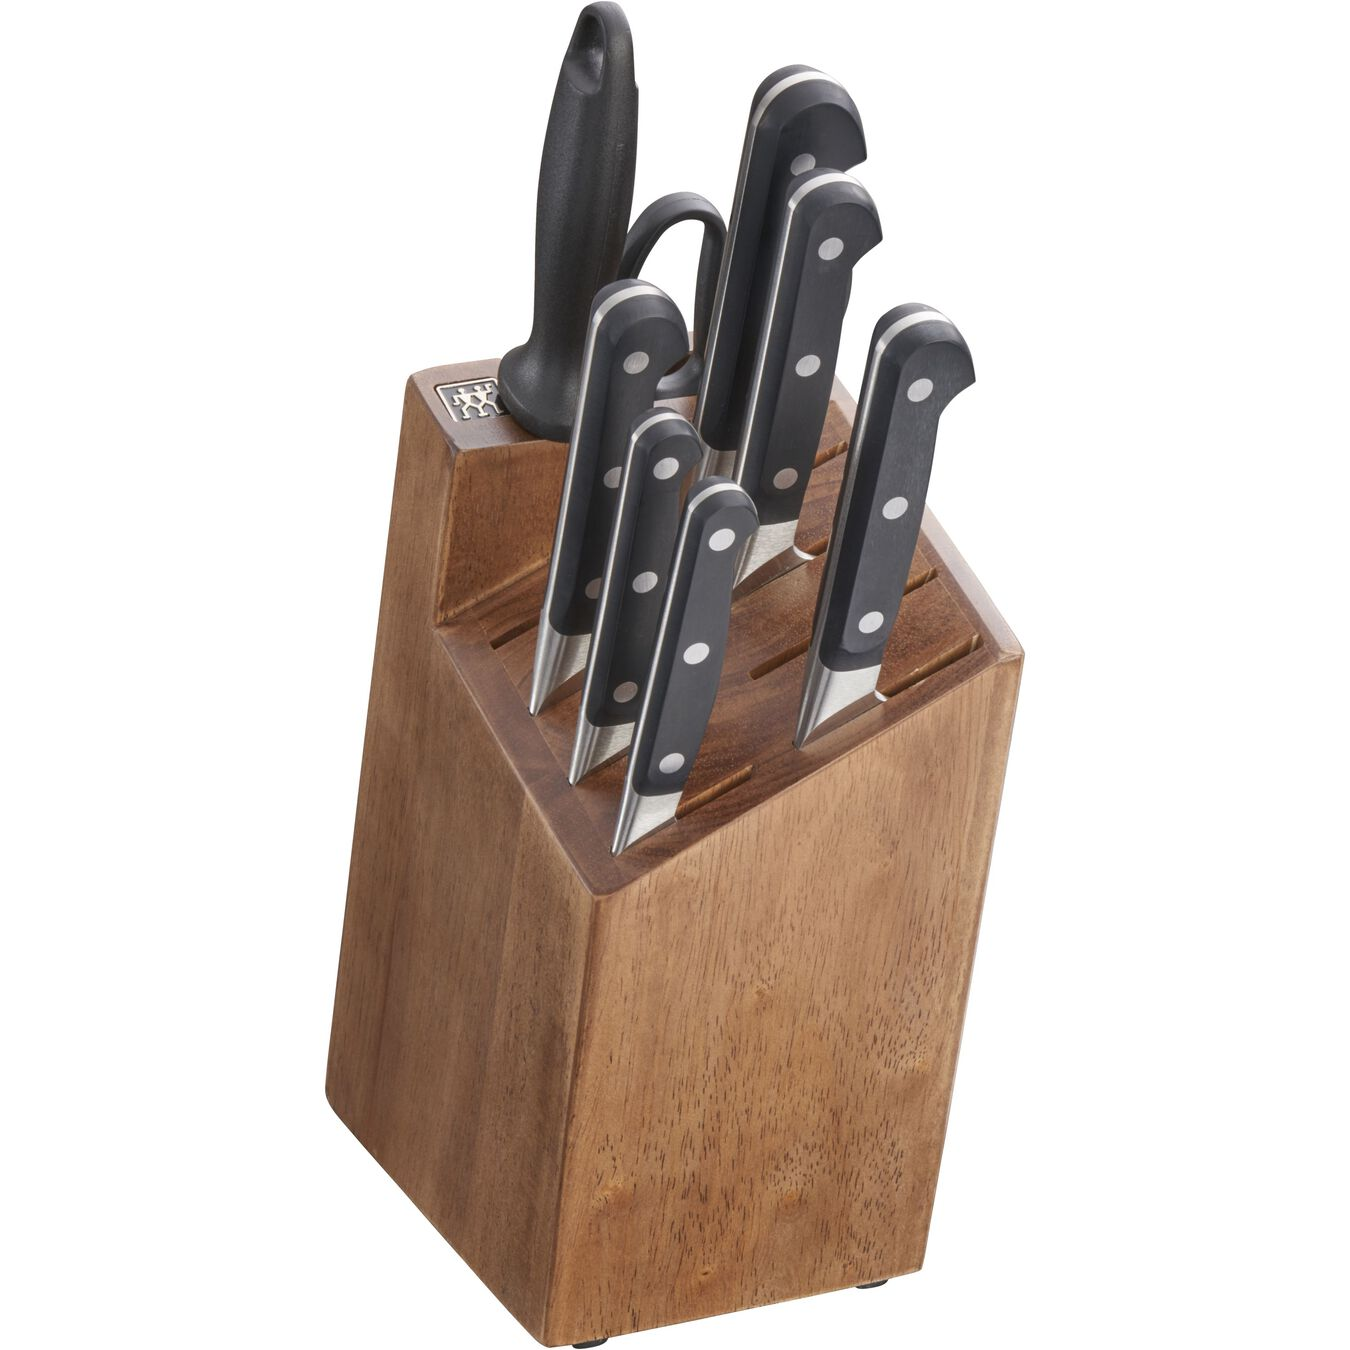 9-pc Knife Block Set,,large 1